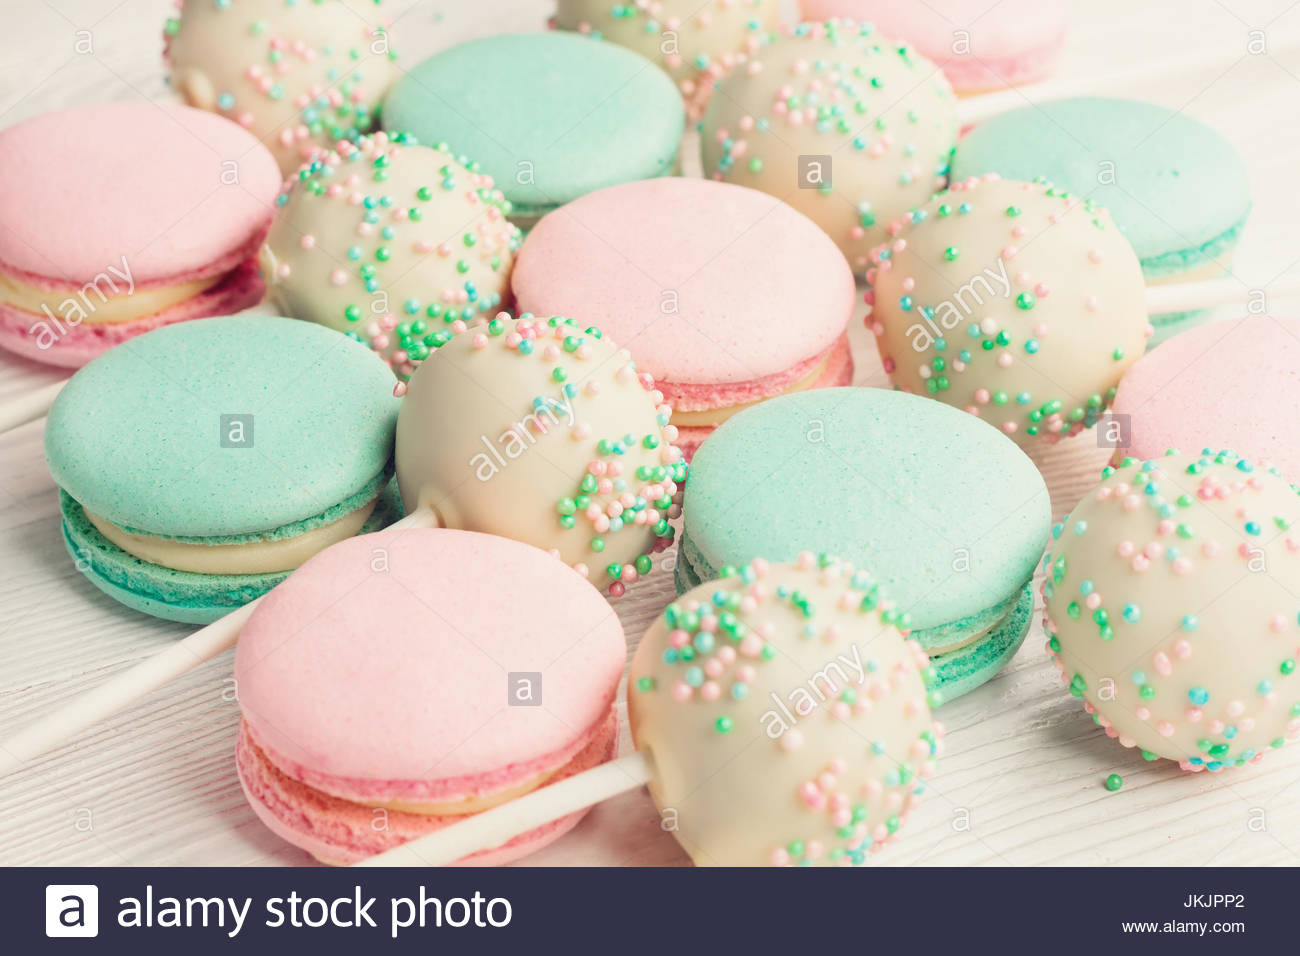 Background of macarons and cake pops on sticks Stock Photo 1300x956